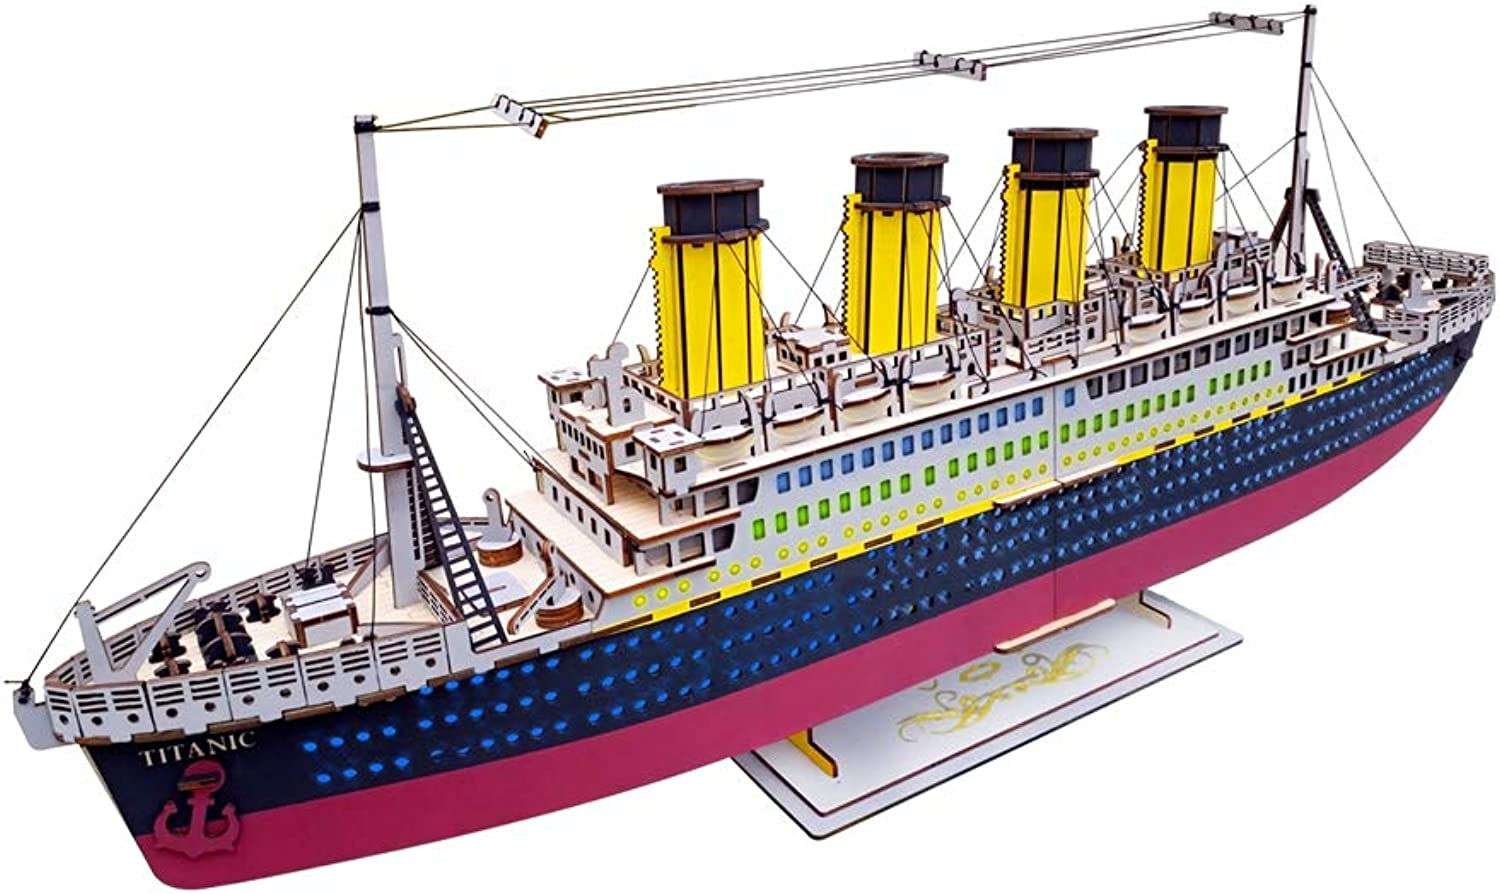 CYXassembly 3D Wooden Puzzle Toy Kit,Titanic ThreeDimensional Model  Handmade Gifts  Safe and Environmentally Friendly Wooden Model Kit